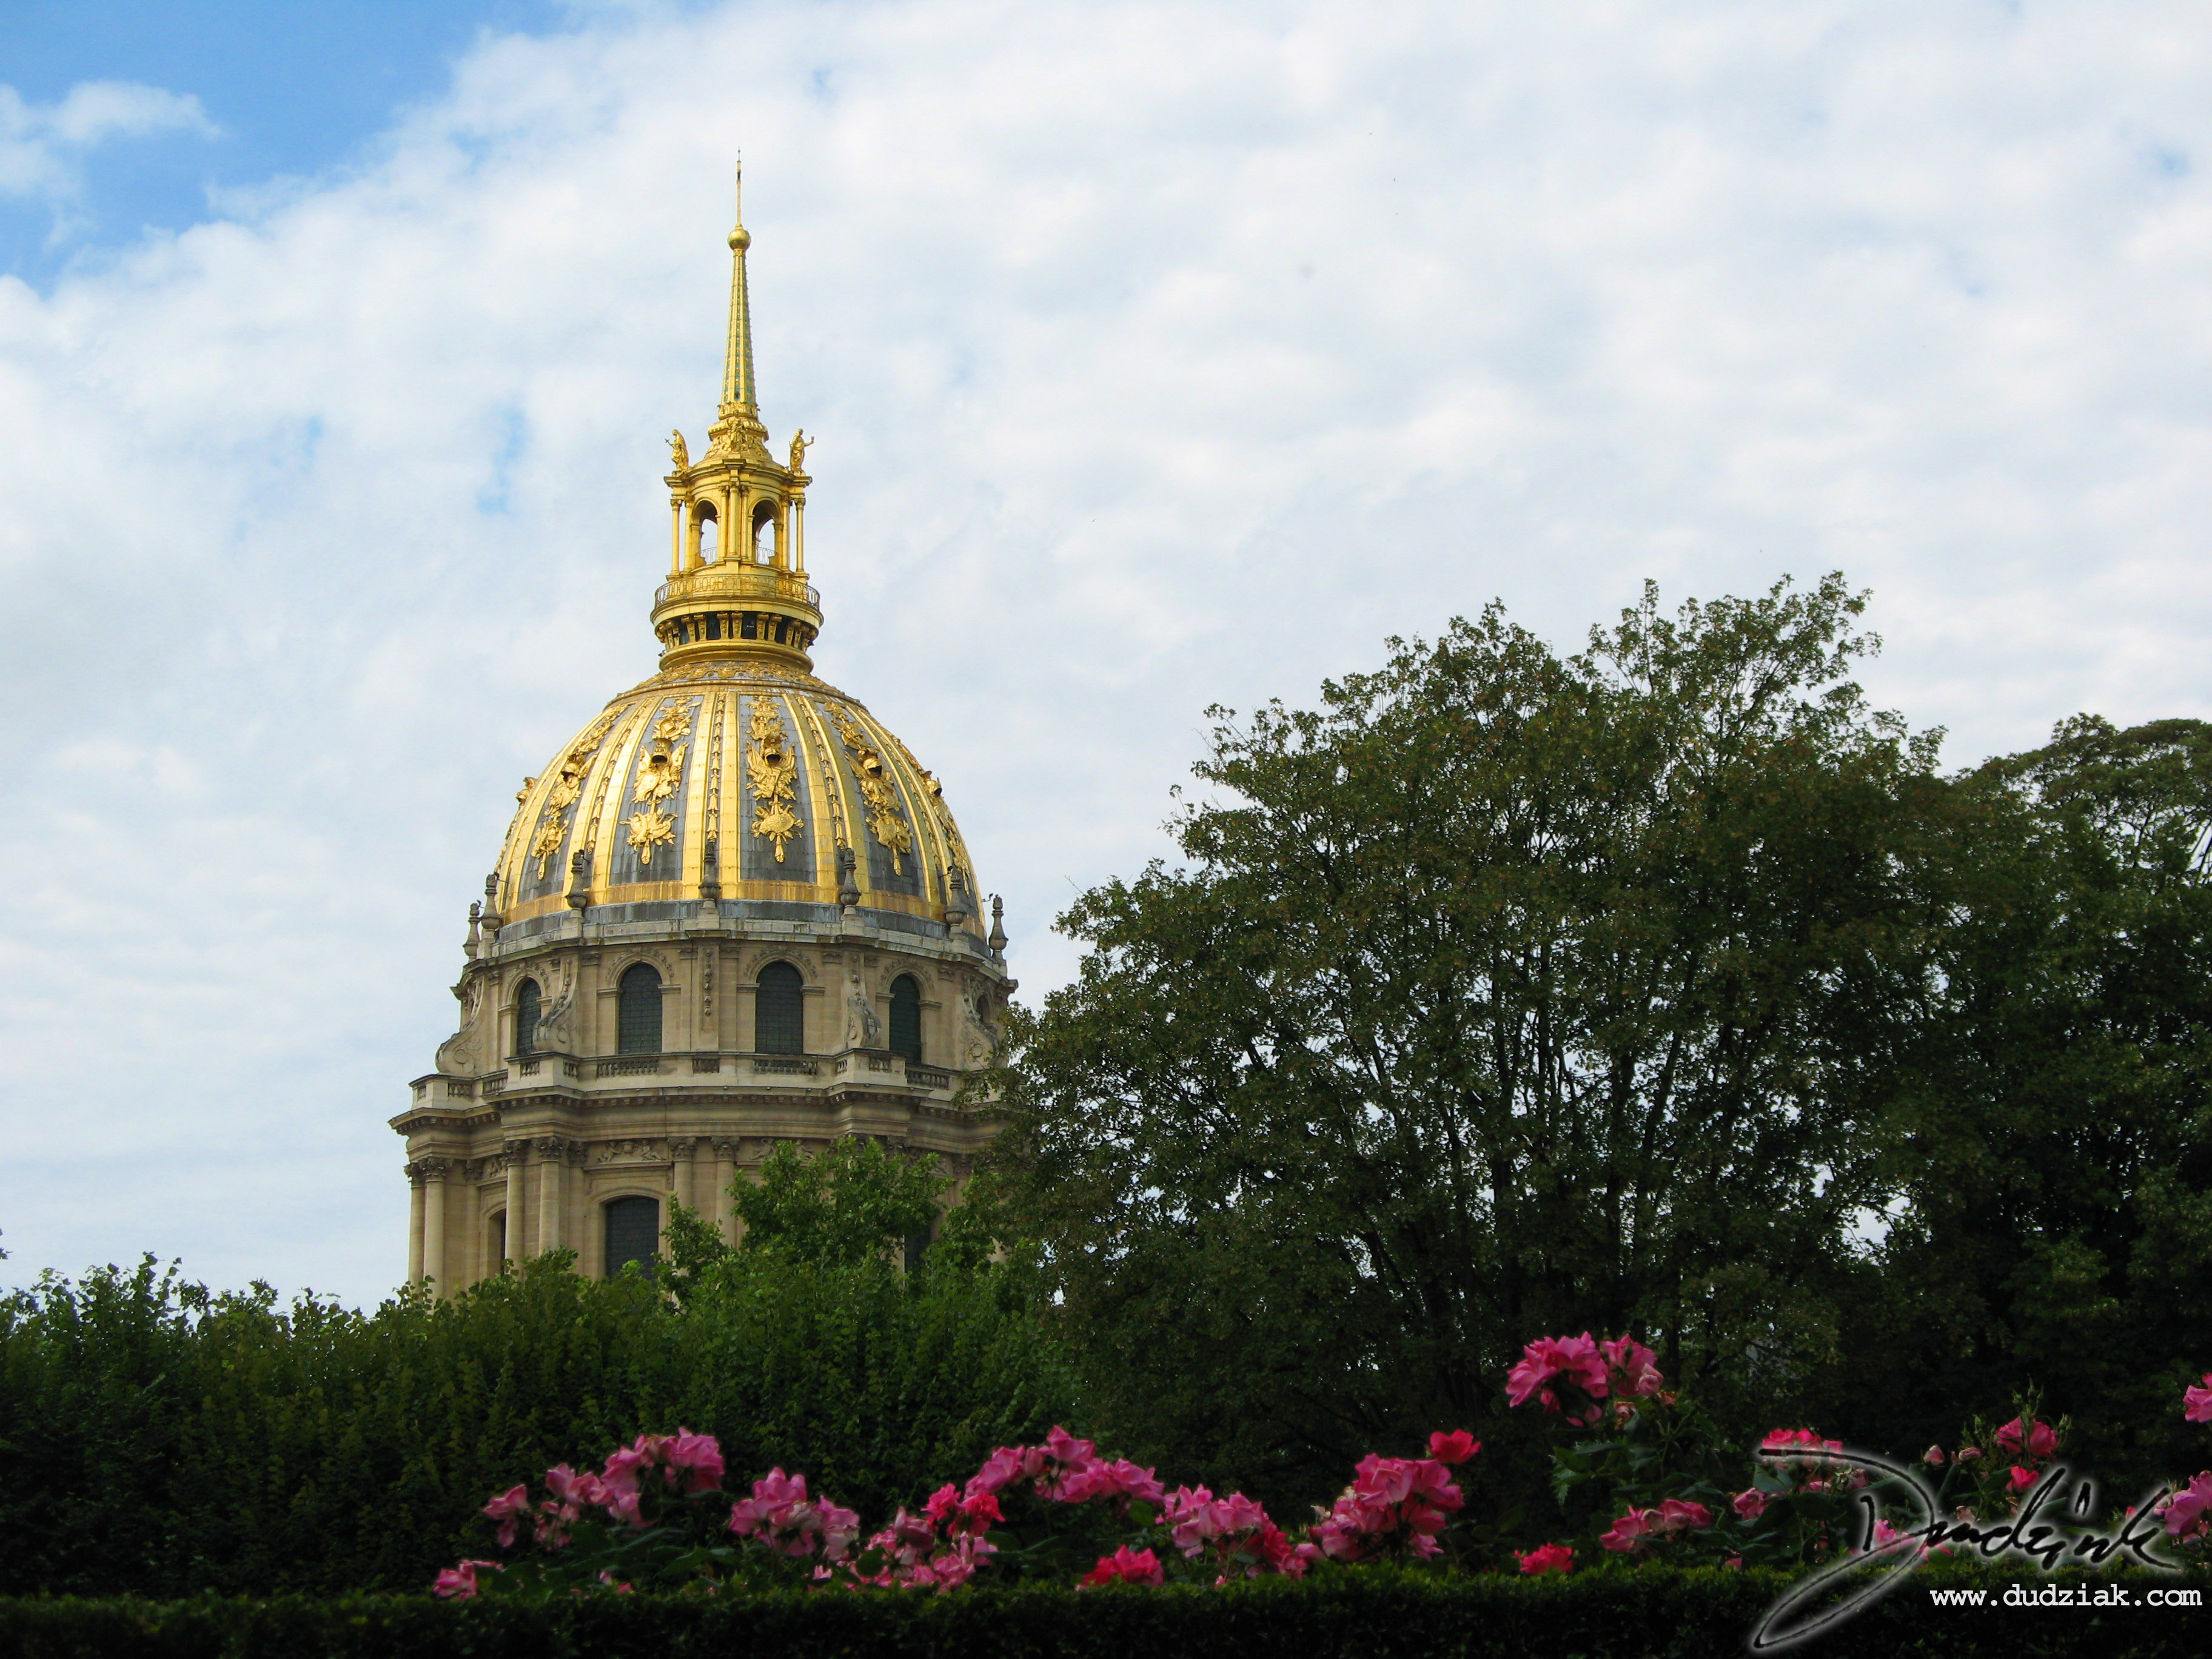 Paris France,  Military Museum,  Paris France,  dome,  Les Invalides,  Military Museum,  Les Invalides